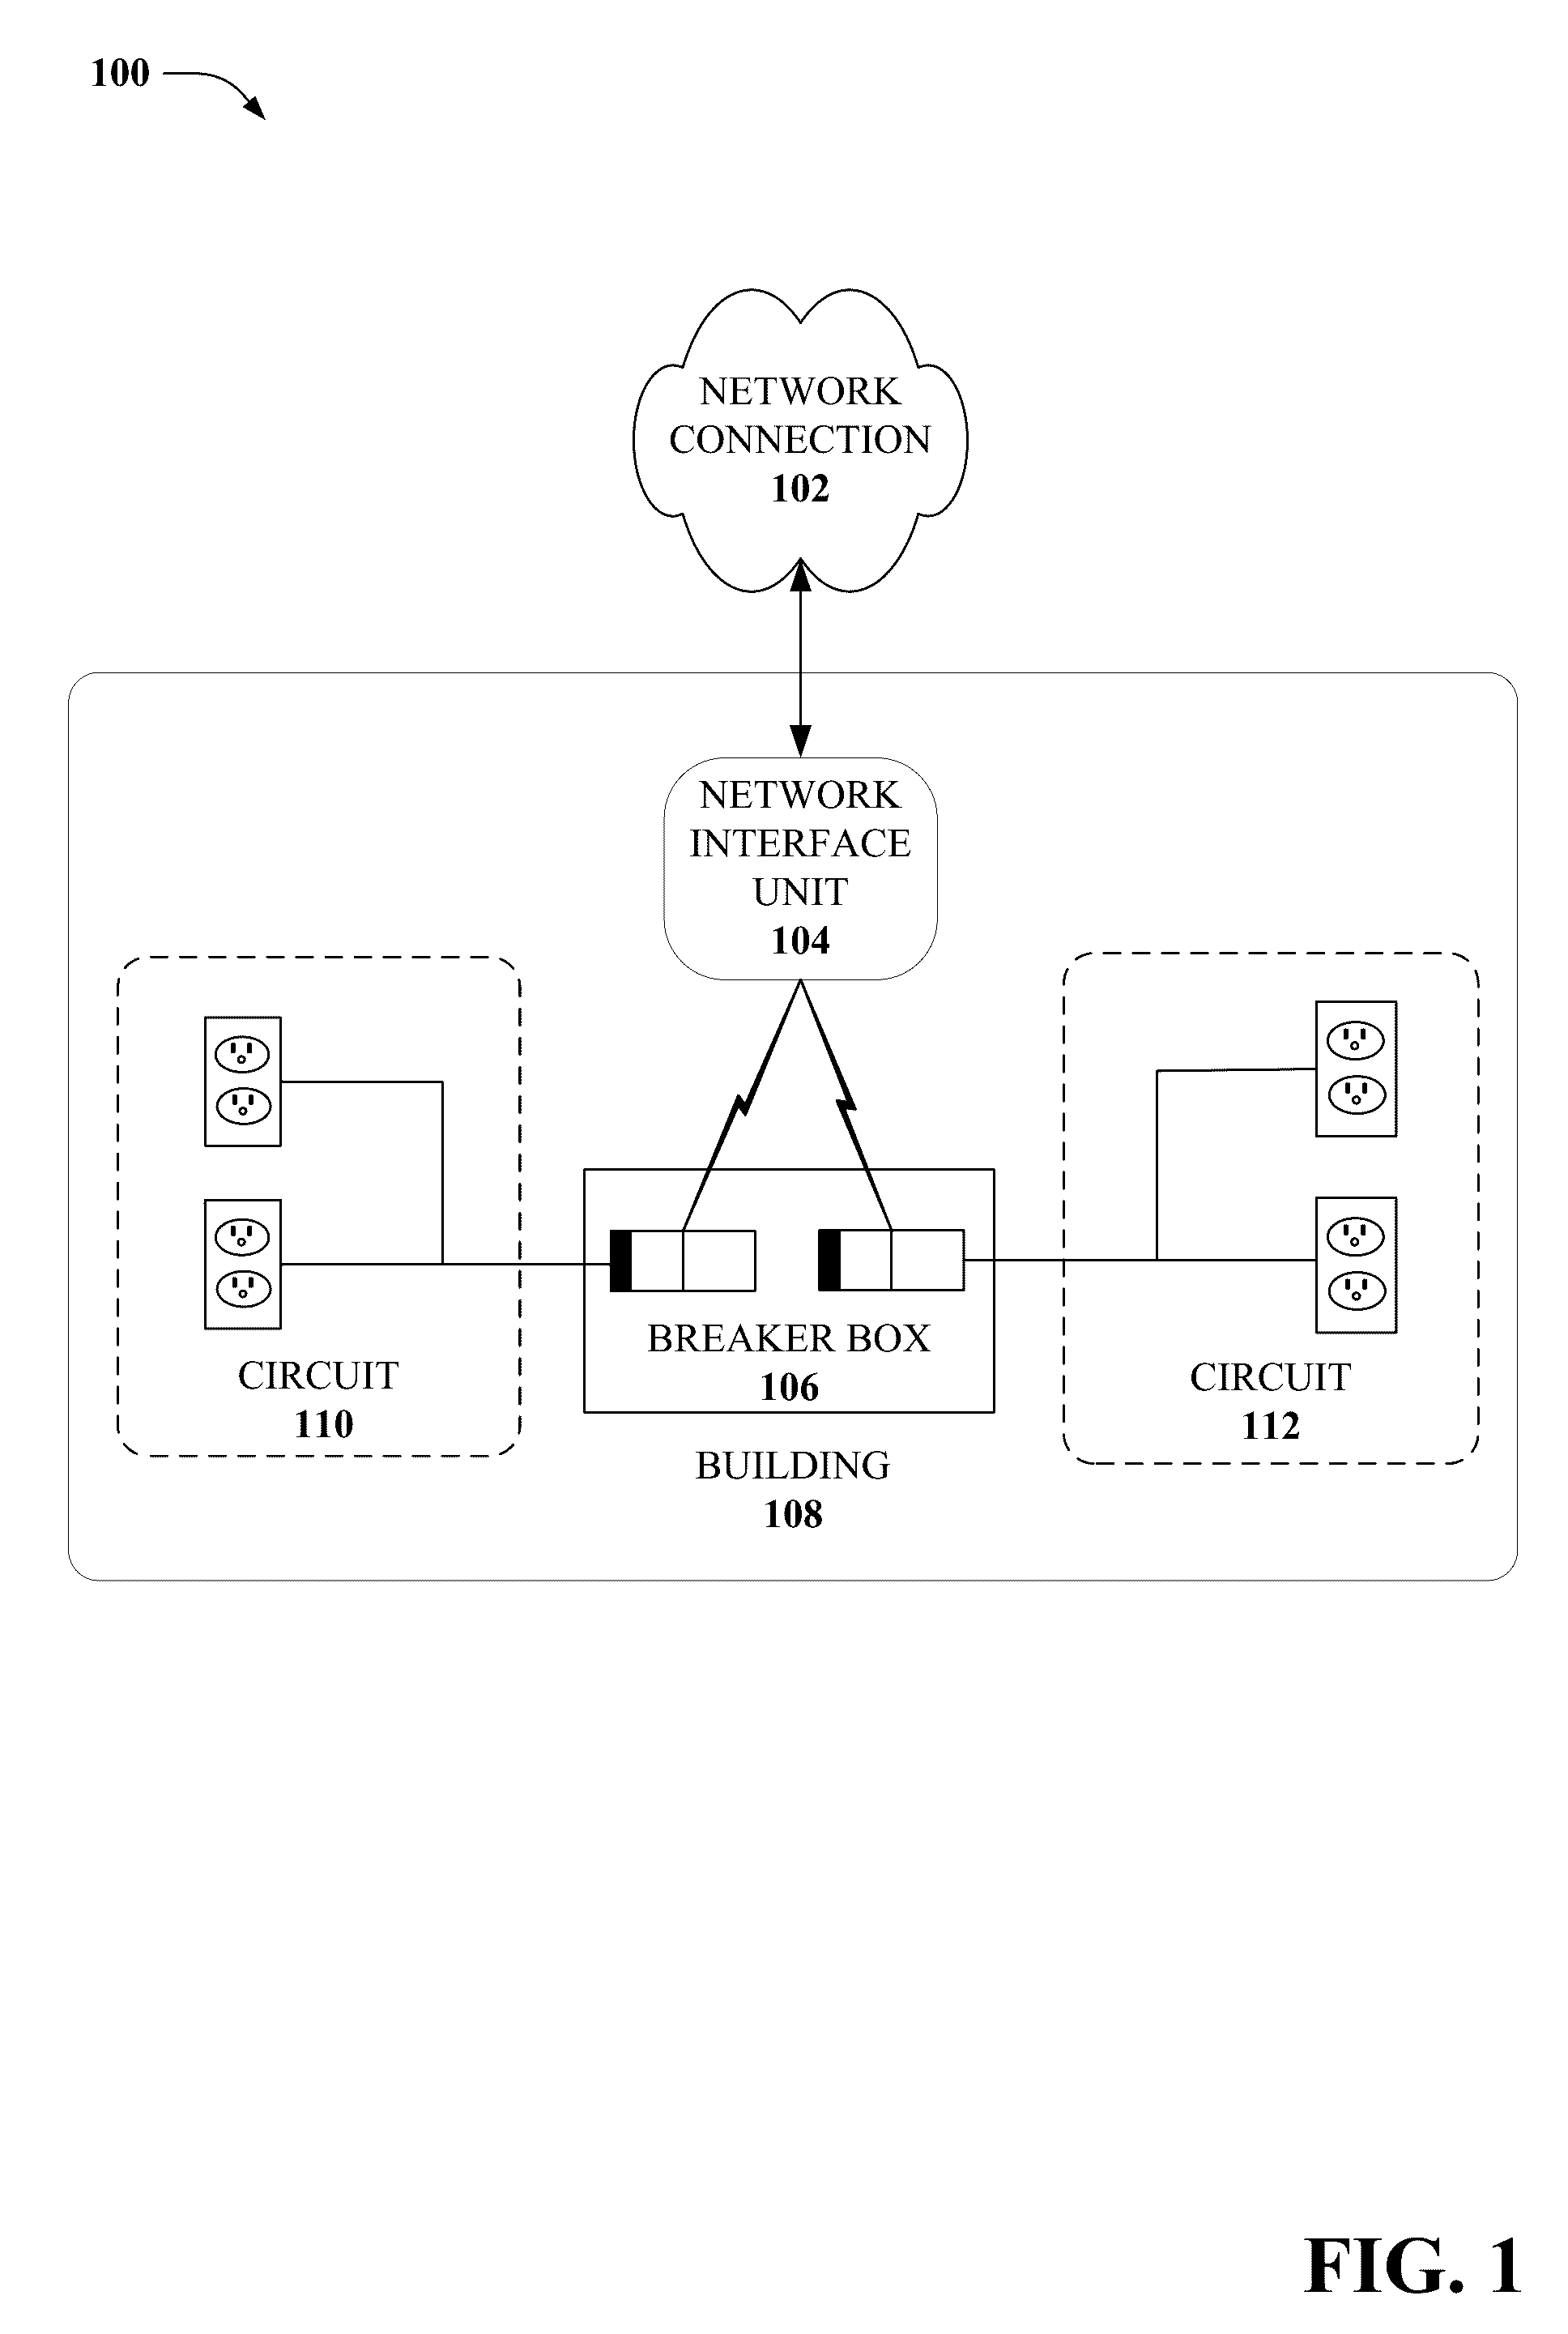 Us9685992b2 Circuit Panel Network And Methods Thereof Google Patents Meters Scanners Breaker Finders Sperry Finder